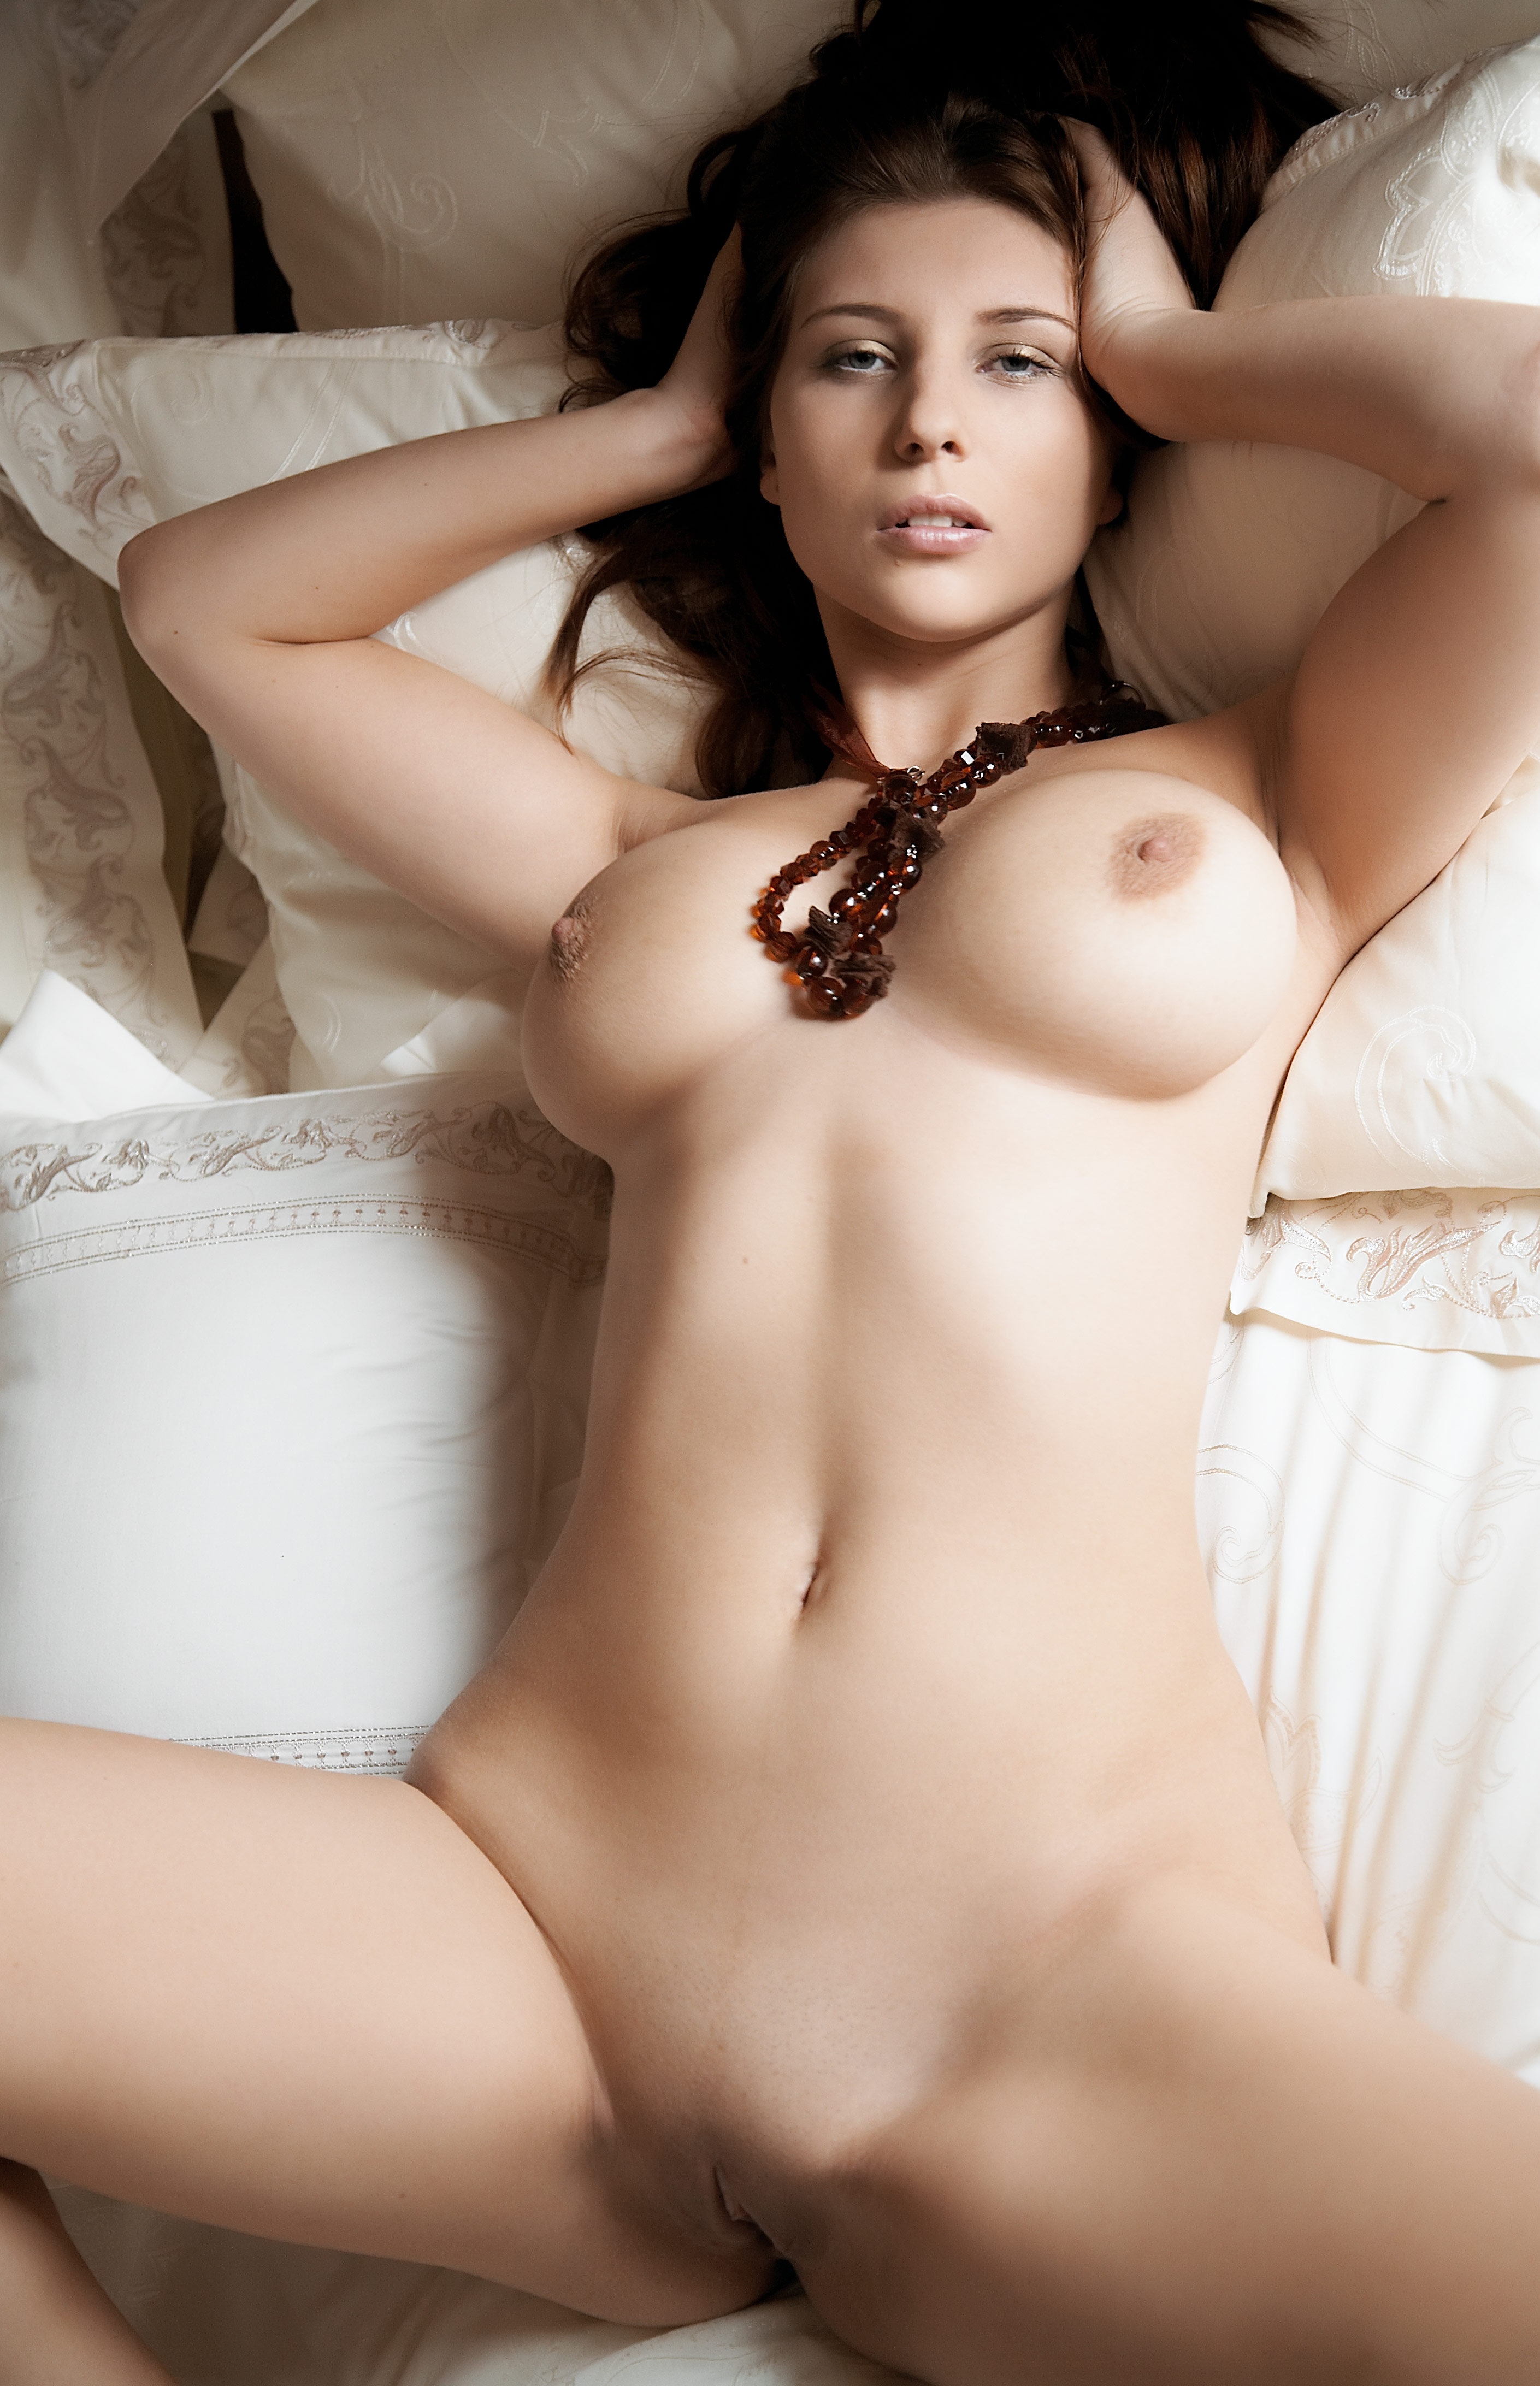 Consider, that Hot sexy naked body idea